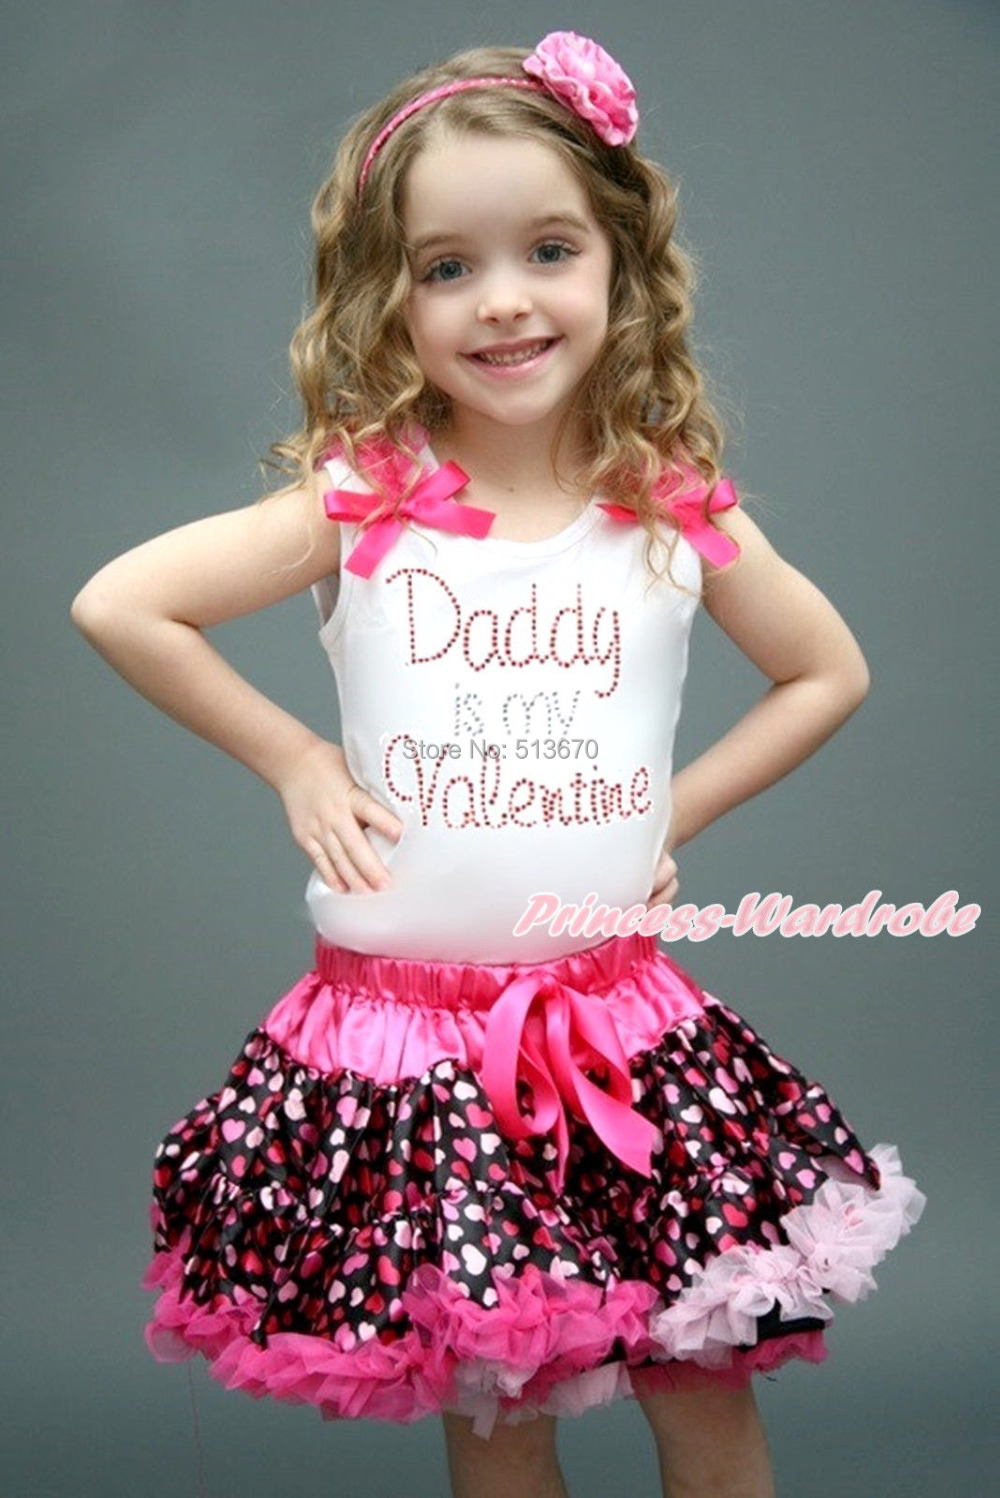 Rhinestone Daddy Is My Valentine White Top Hot Pink Heart Pettiskirt Set 1-8Year MAPSA0164 valentine daddy main squeeze white top pink floral girl skirt outfit set 1 8year